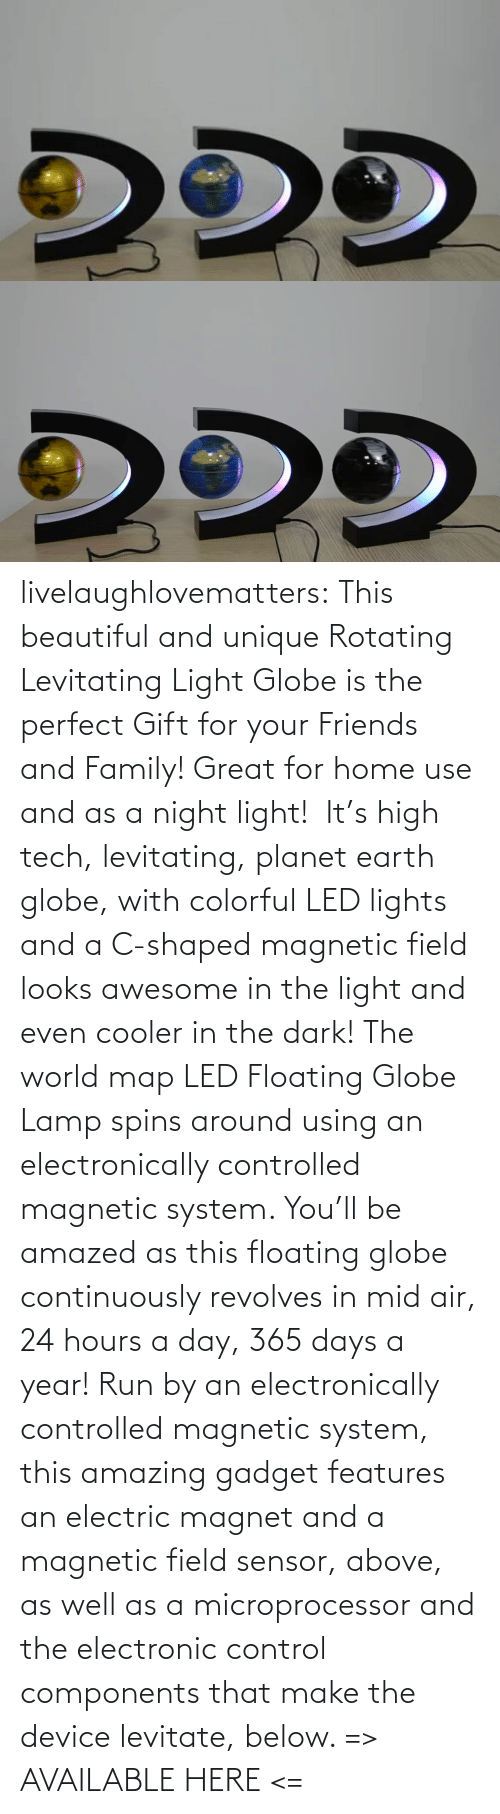 Home: livelaughlovematters: This beautiful and unique Rotating Levitating Light Globe is the perfect Gift for your Friends and Family! Great for home use and as a night light!  It's high tech, levitating, planet earth globe, with colorful LED lights and a C-shaped magnetic field looks awesome in the light and even cooler in the dark! The world map LED Floating Globe Lamp spins around using an electronically controlled magnetic system.  You'll be amazed as this floating globe continuously revolves in mid air, 24 hours a day, 365 days a year! Run by an electronically controlled magnetic system, this amazing gadget features an electric magnet and a magnetic field sensor, above, as well as a microprocessor and the electronic control components that make the device levitate, below.  => AVAILABLE HERE <=